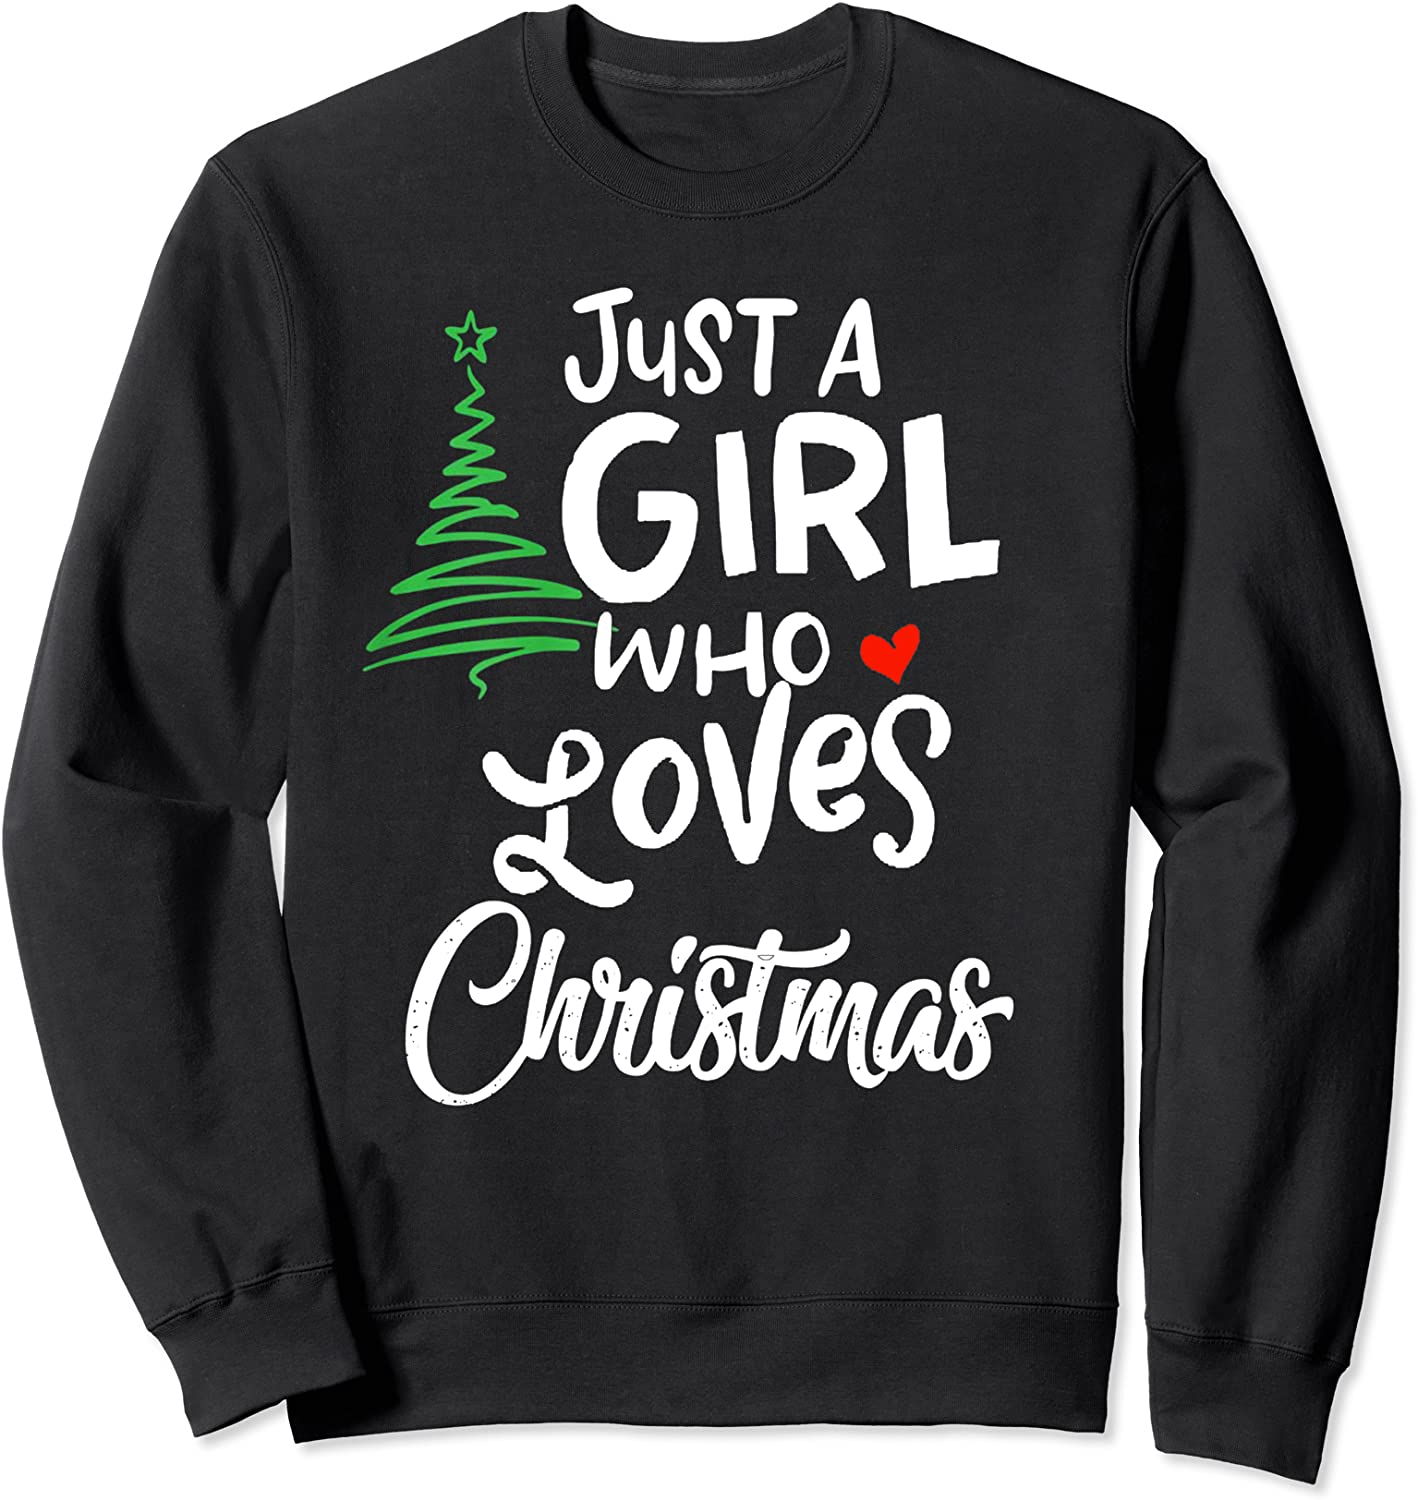 Just a Girl who 引き出物 Loves Gift XMAS Christmas for Sweatshirt 安い